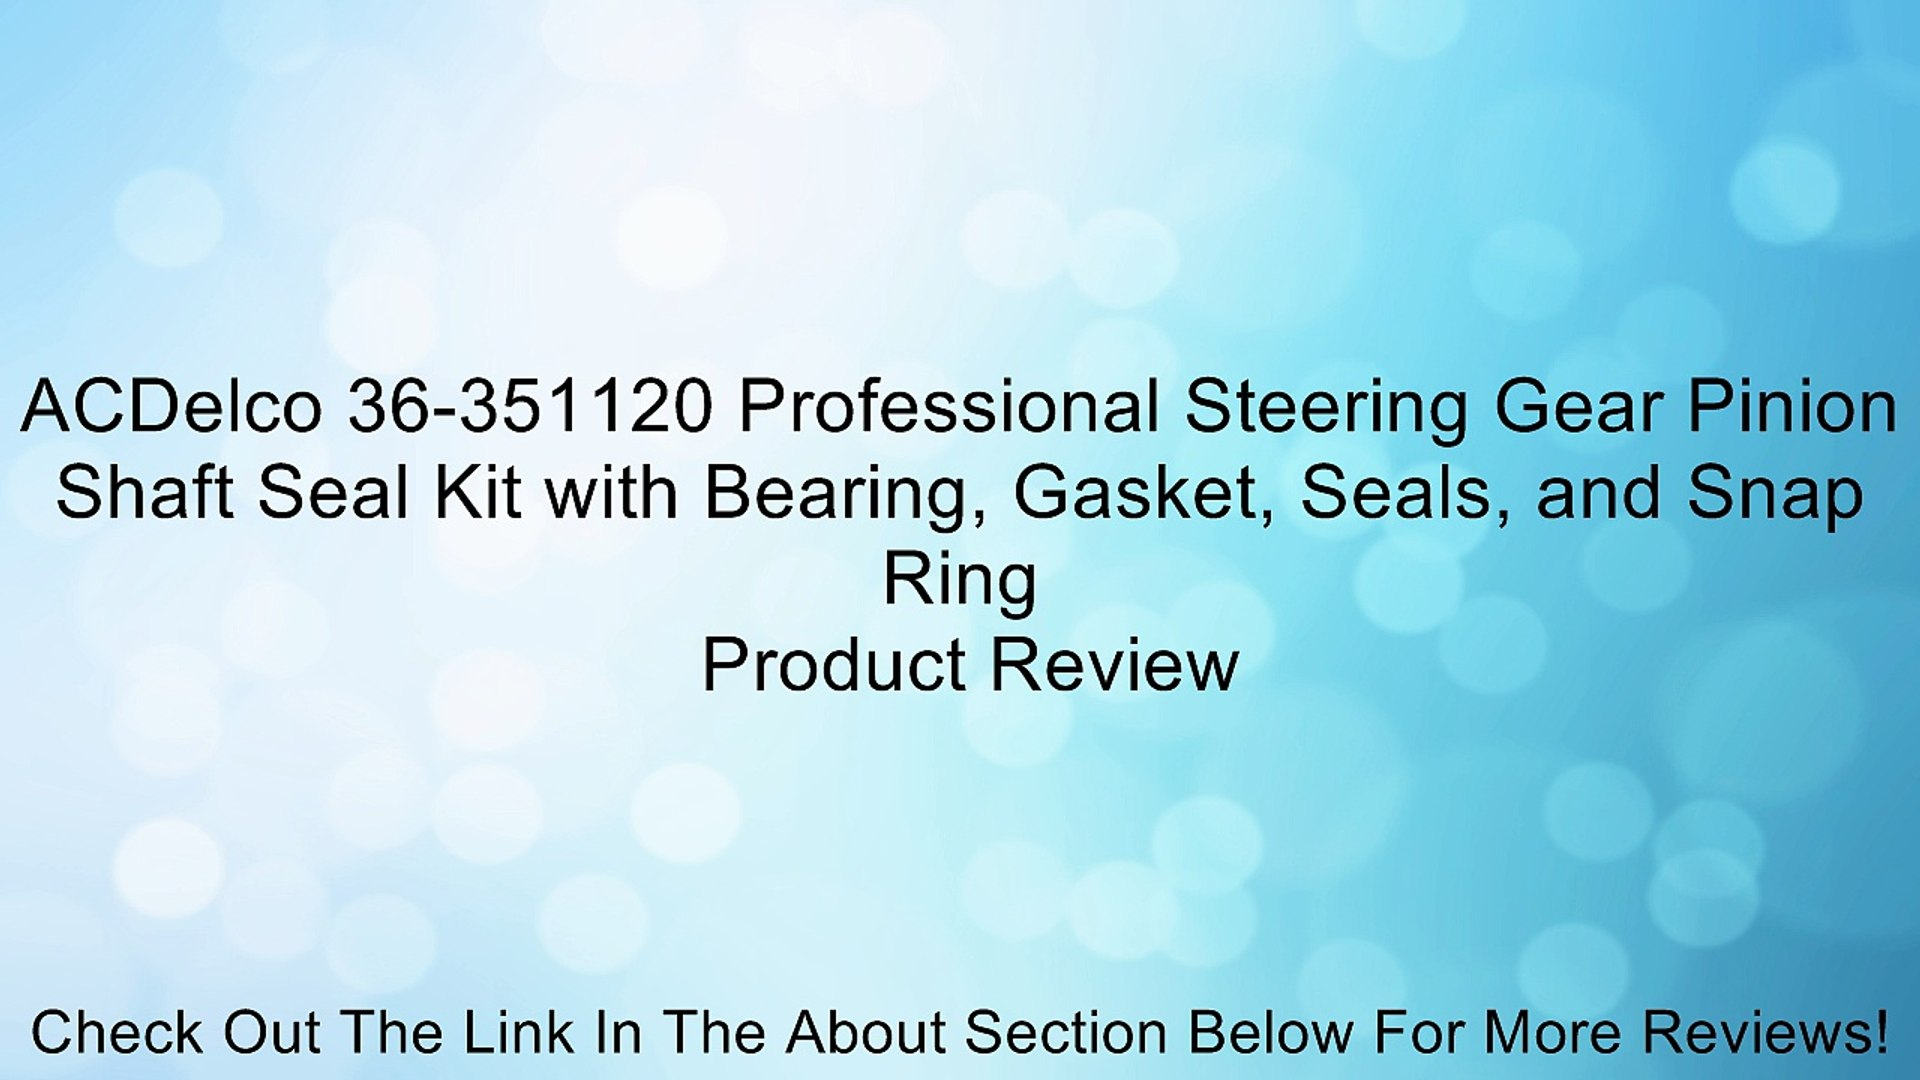 ACDelco 36-351120 Professional Steering Gear Pinion Shaft Seal Kit with Bearing Seals Gasket and Snap Ring